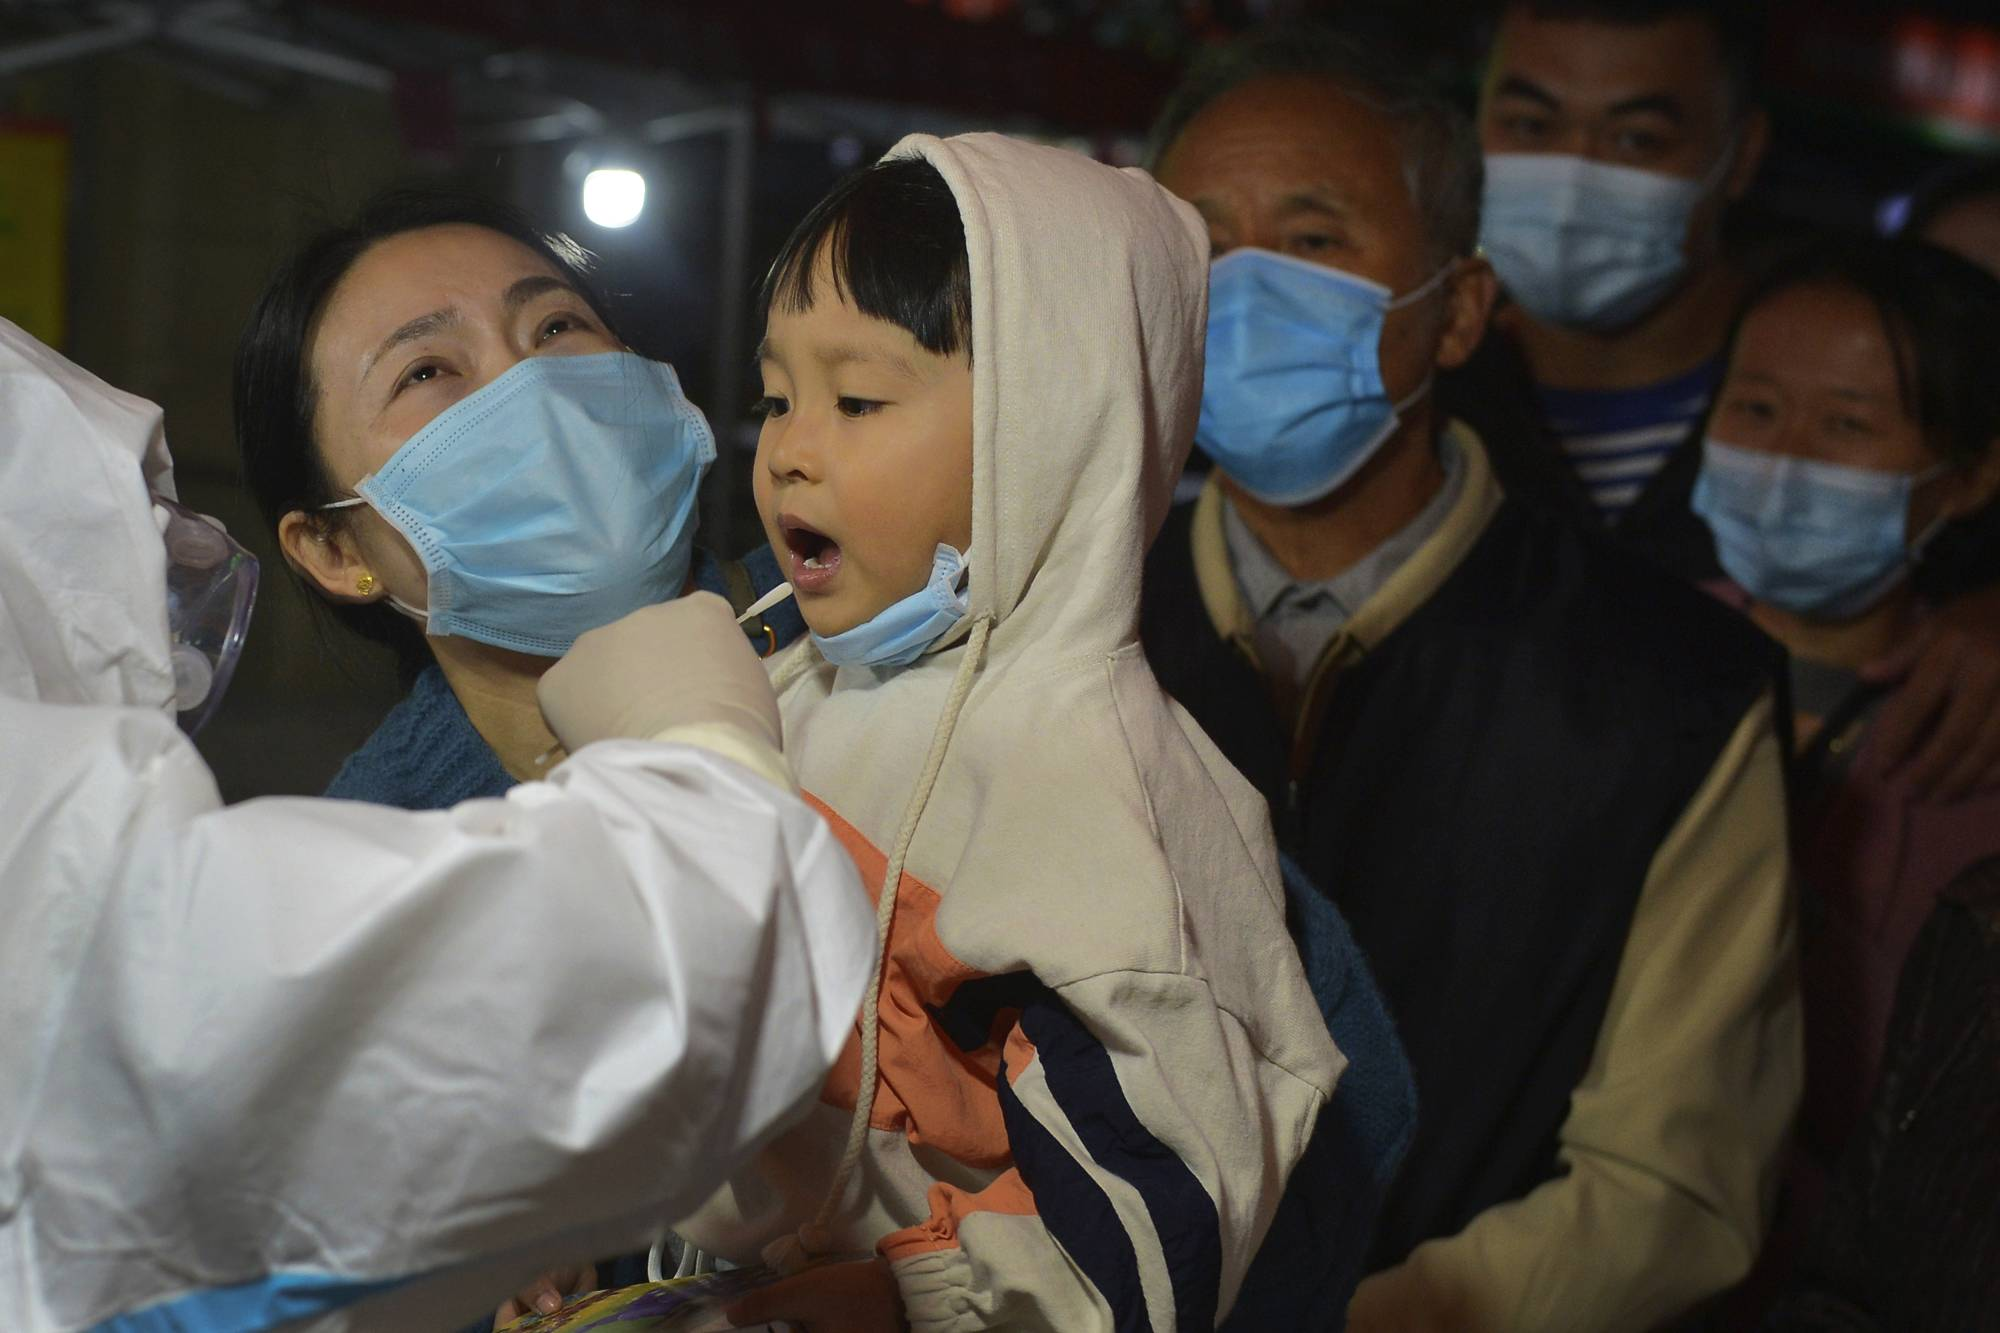 A child is tested for COVID-19 in Qingdao, in east China's Shandong province, on Monday.  | CHINATOPIX / VIA AP